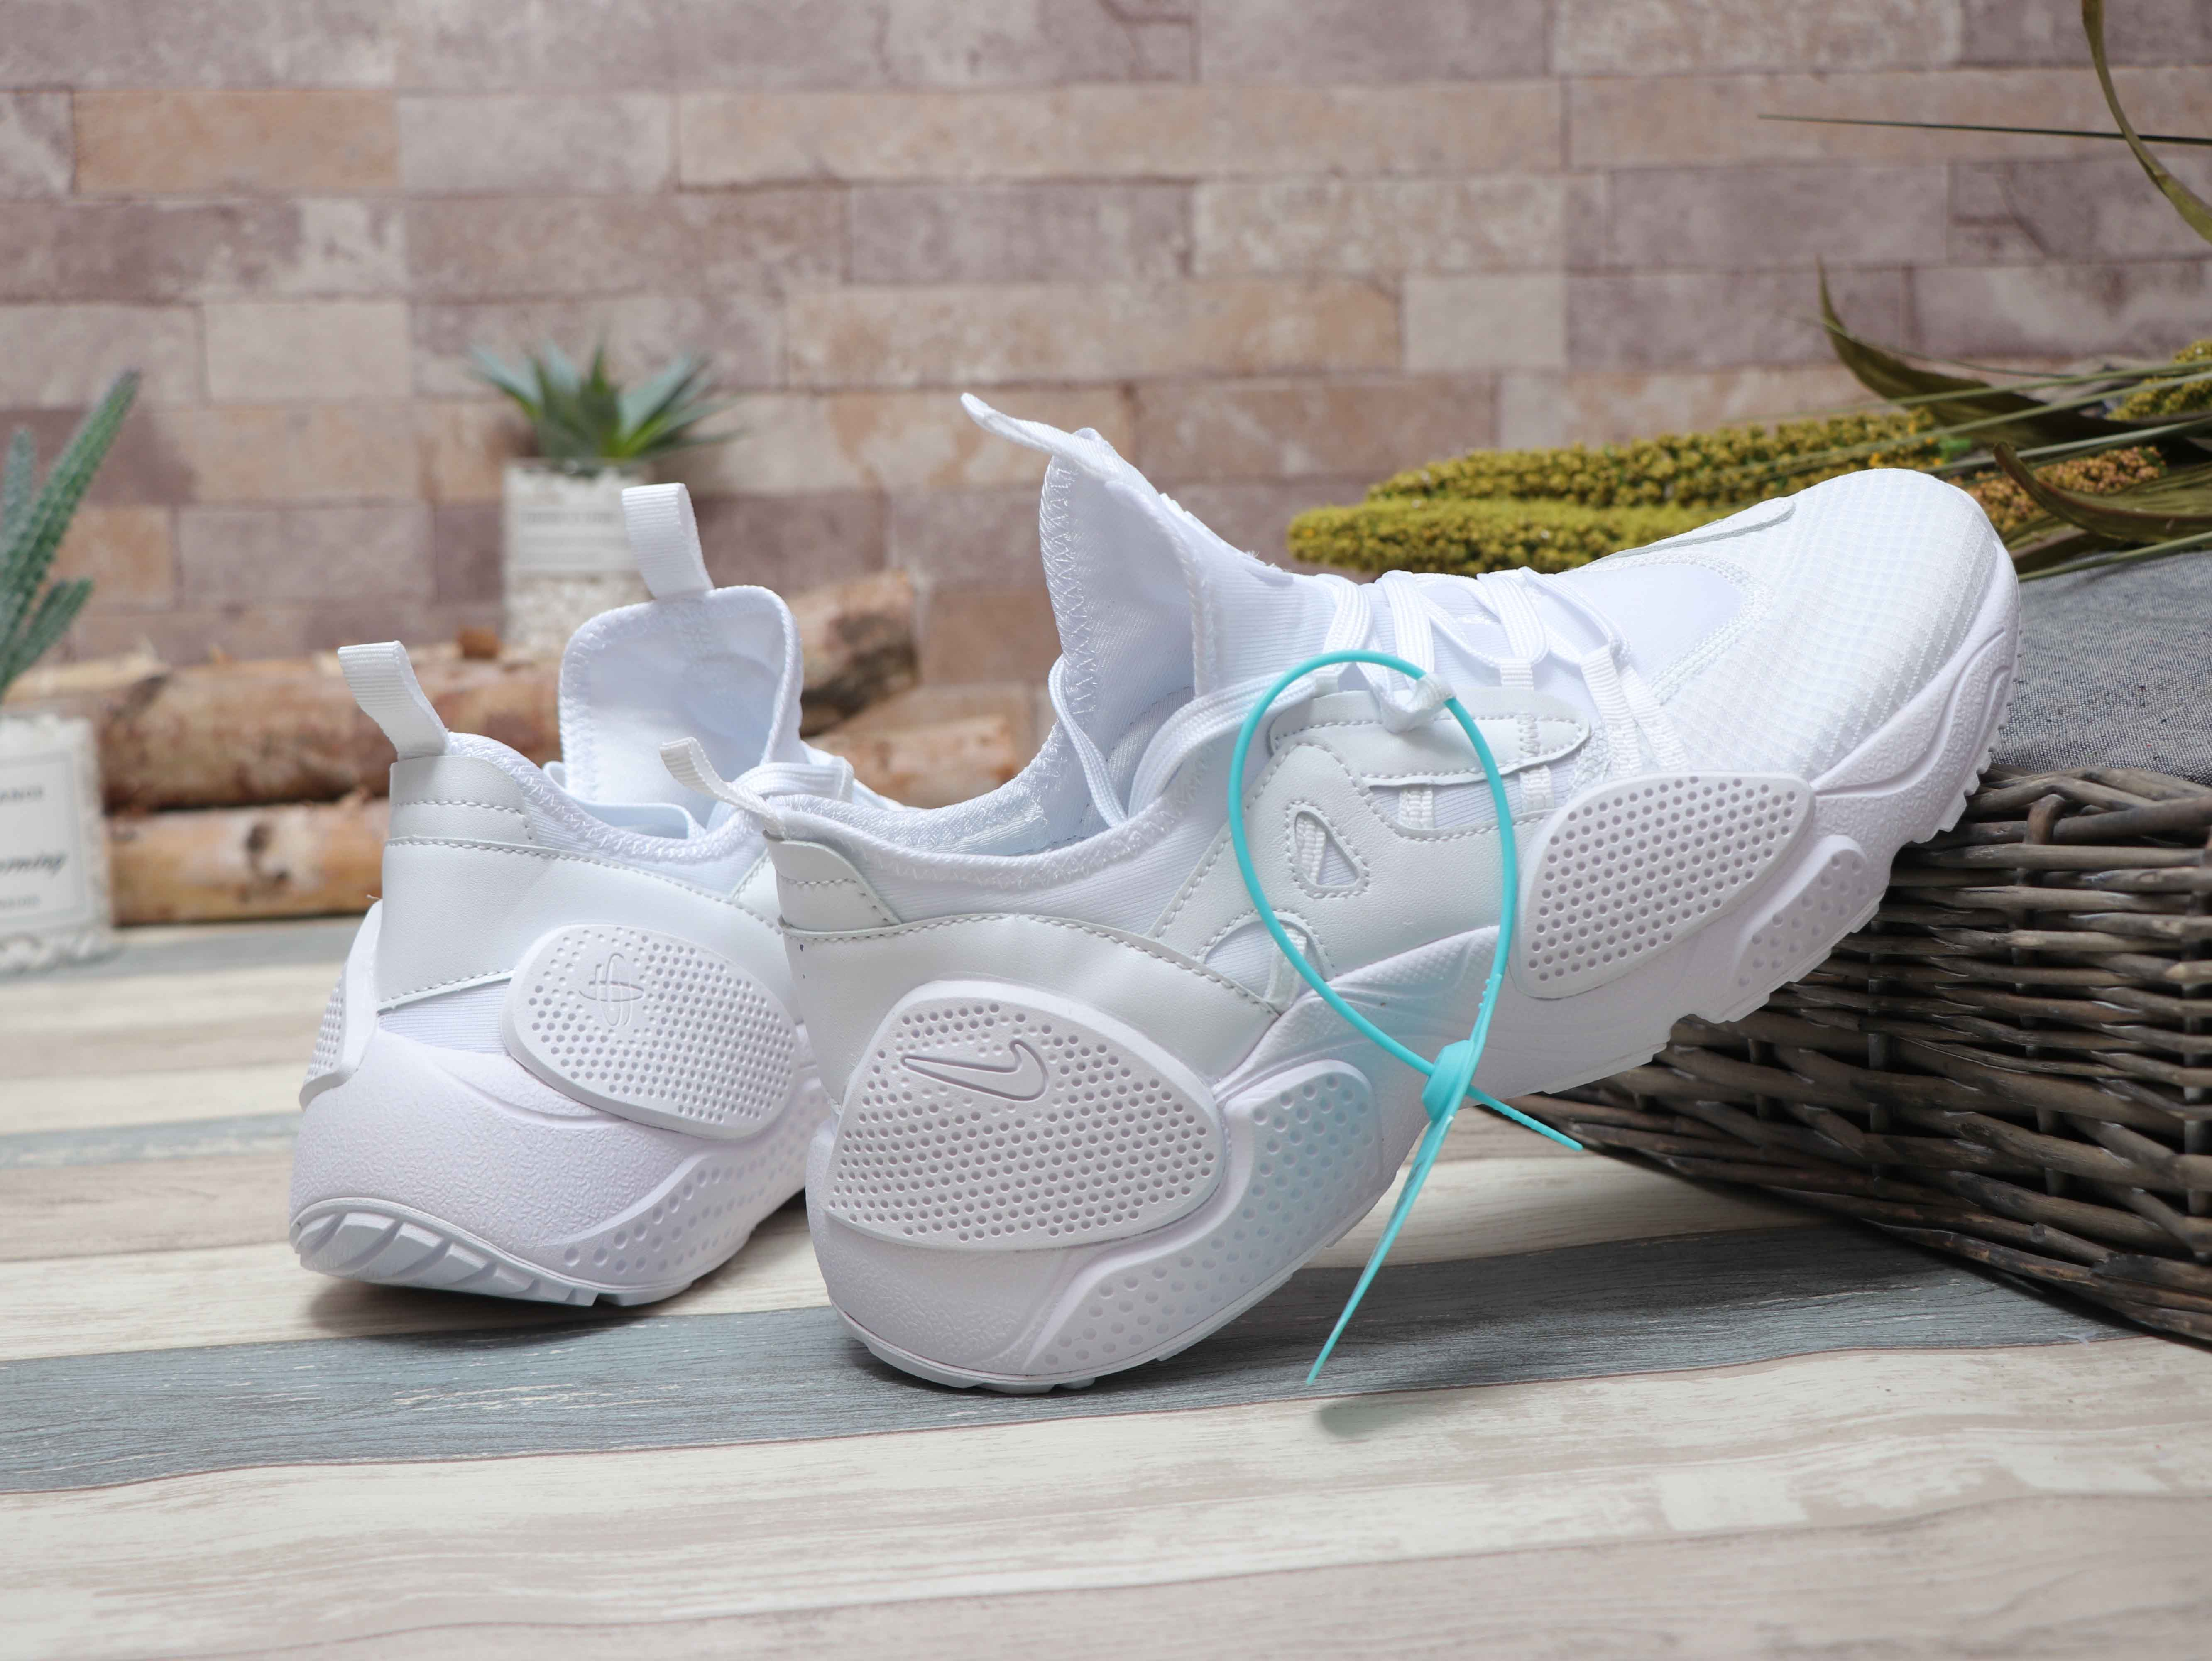 Nike Air Huarache 7 All White Shoes